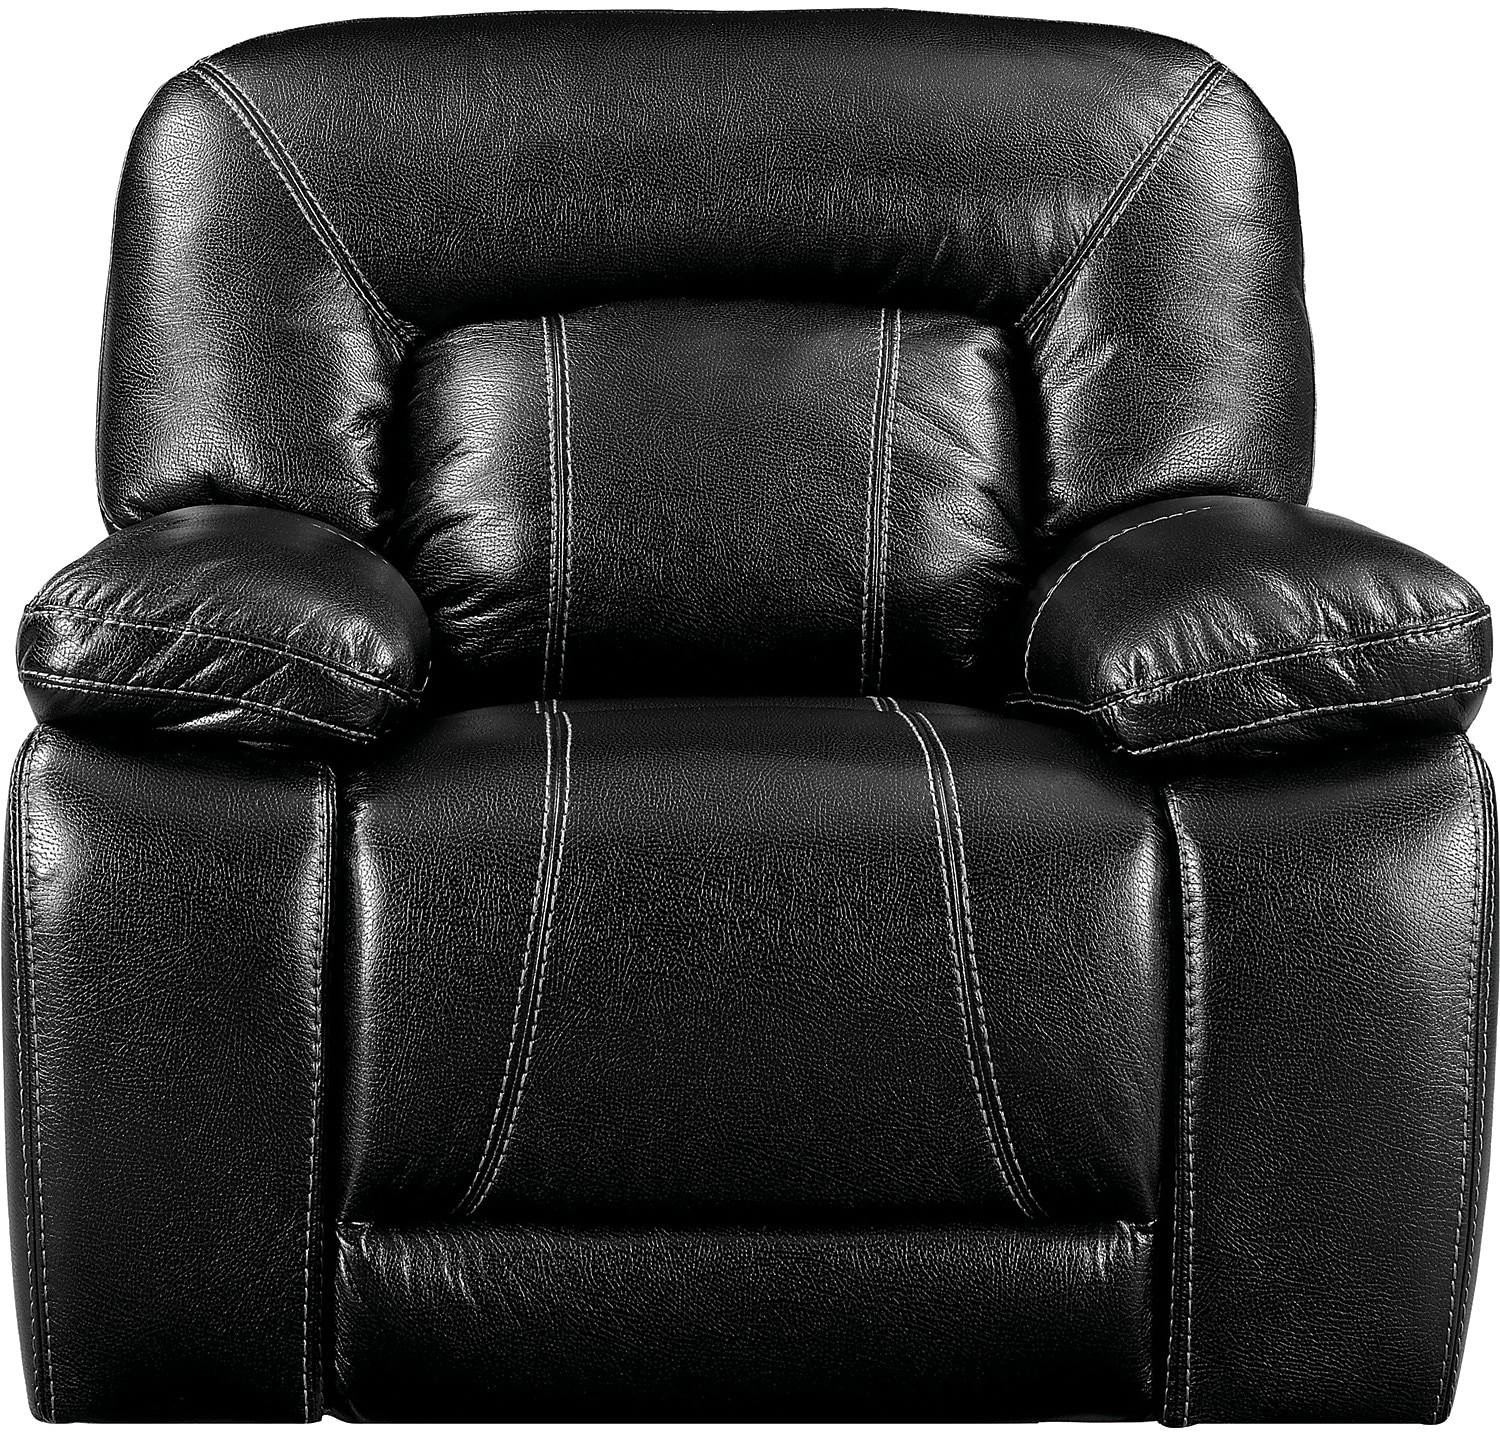 Kimba Leather Look Fabric Reclining Chair – Black